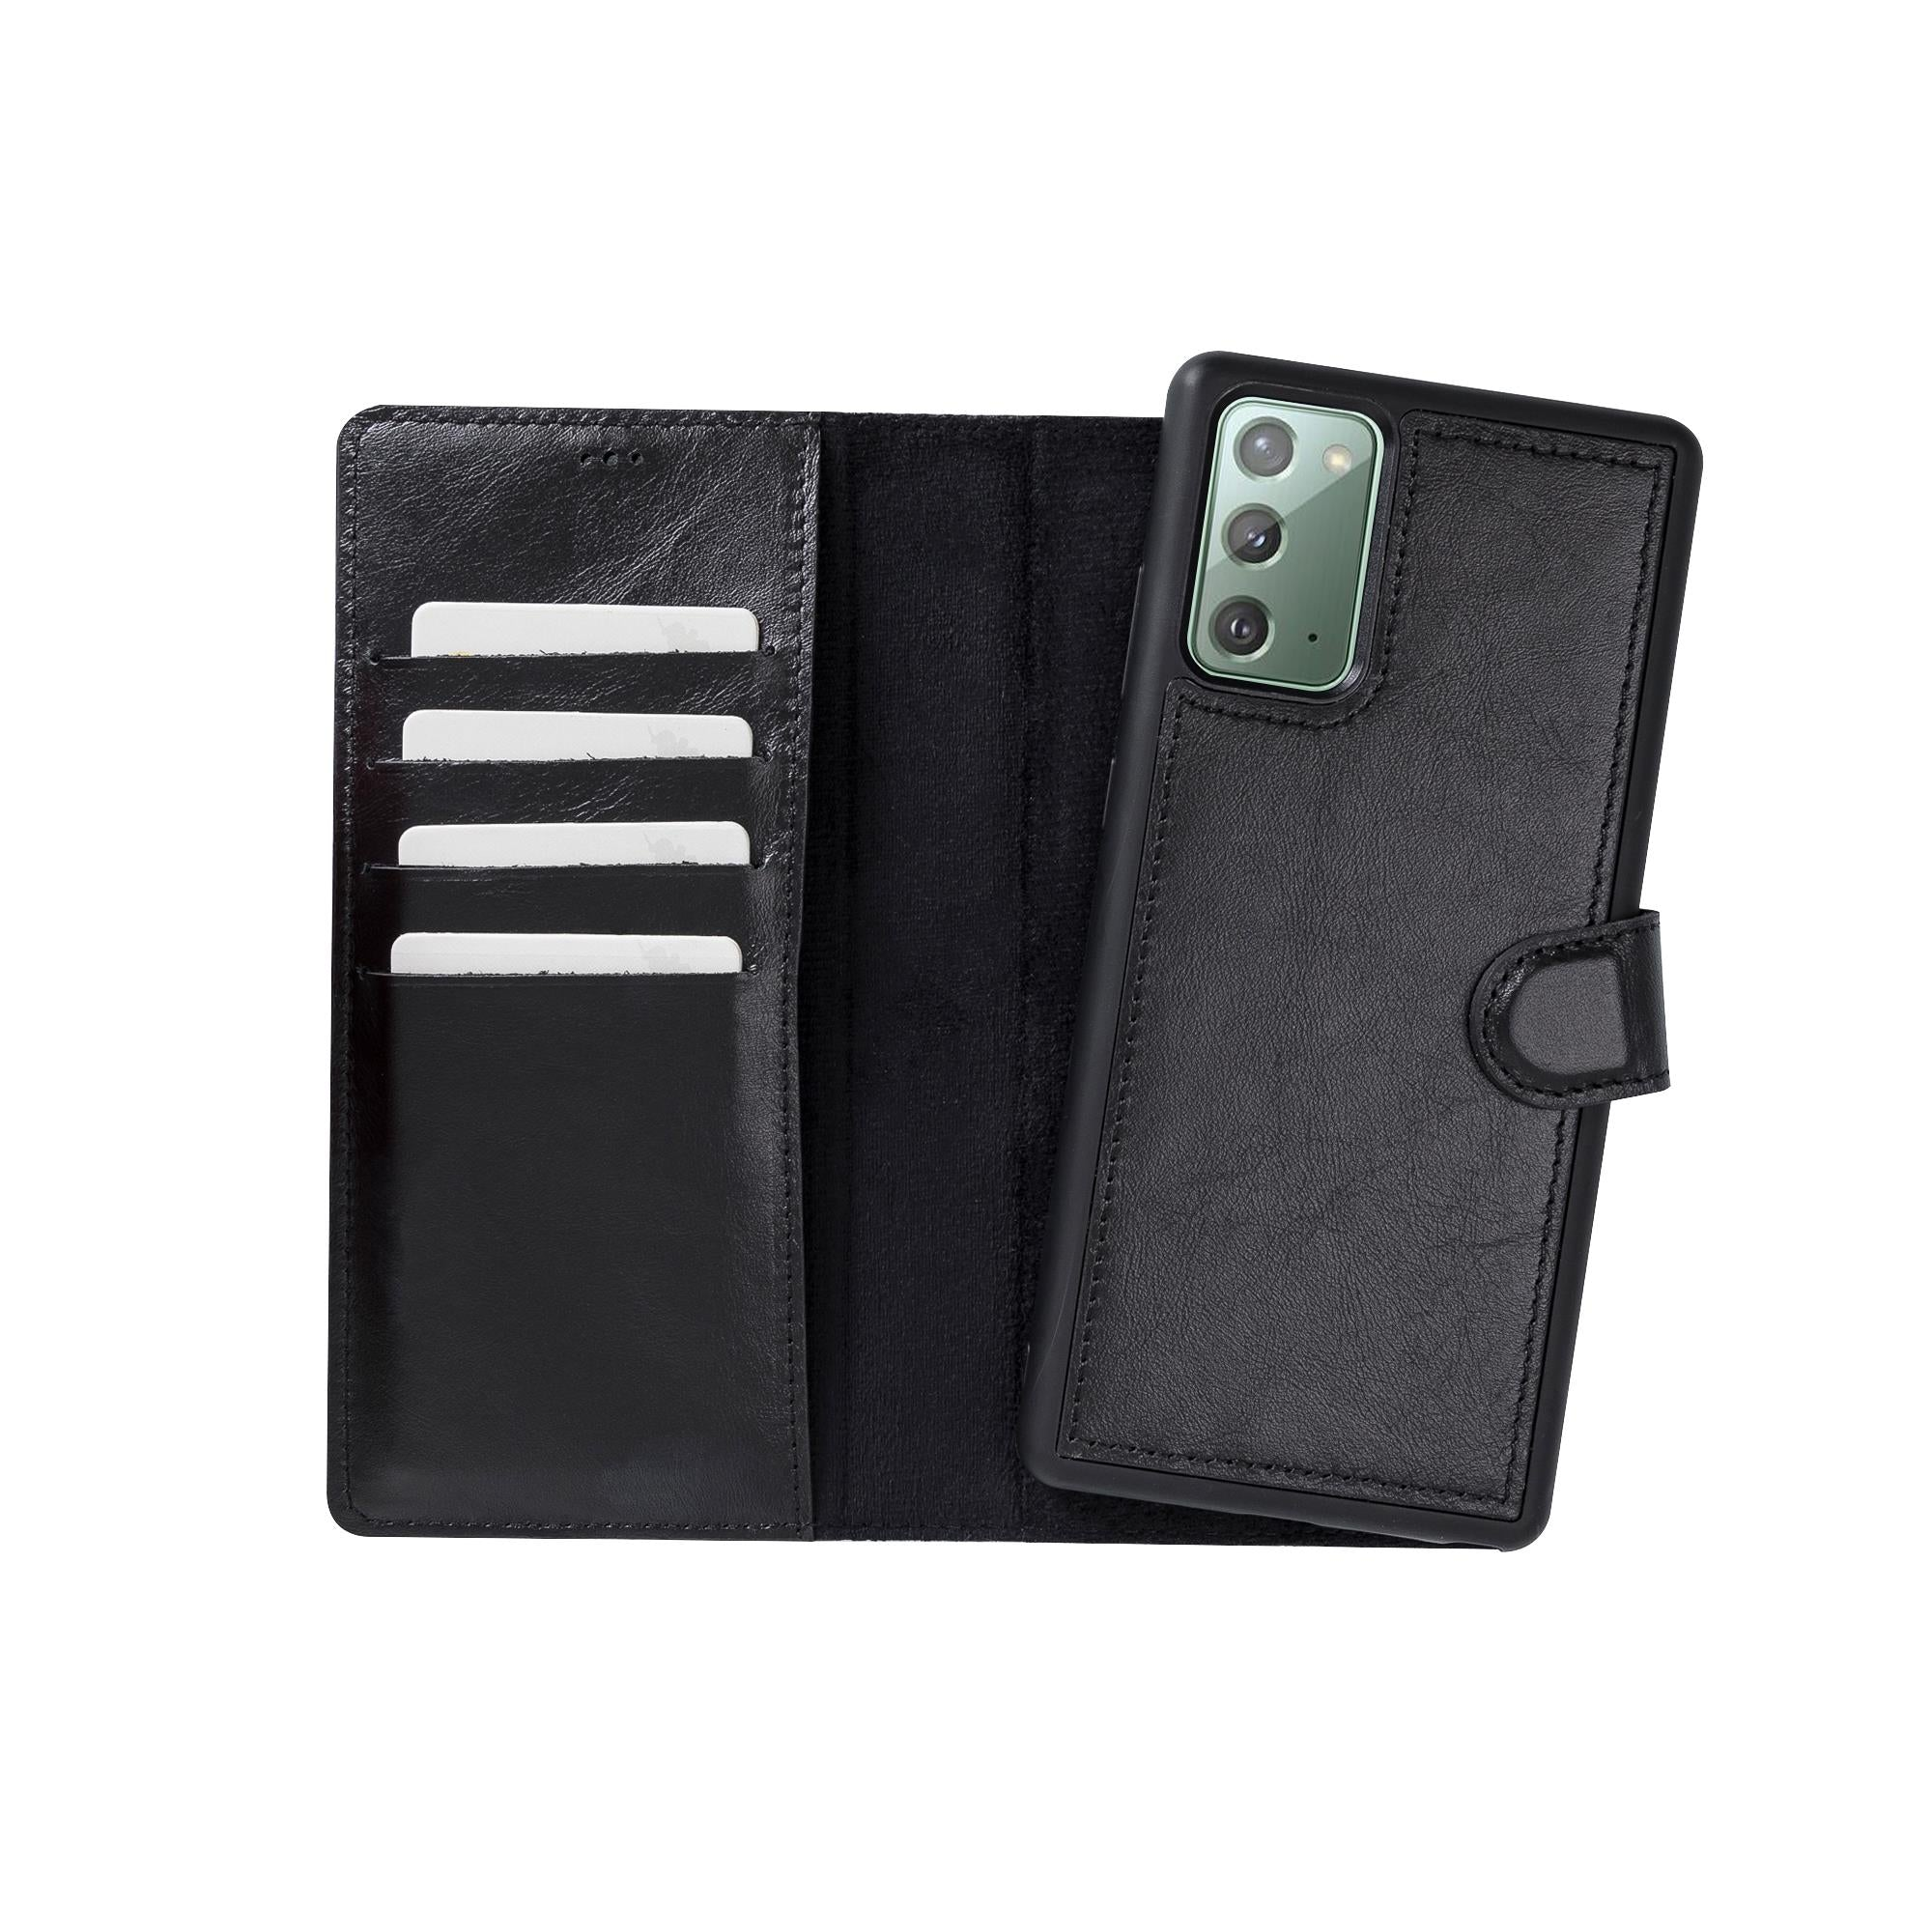 "Magic Magnetic Detachable Leather Wallet Case for Samsung Galaxy Note 20 (6.7"") - BLACK - saracleather"